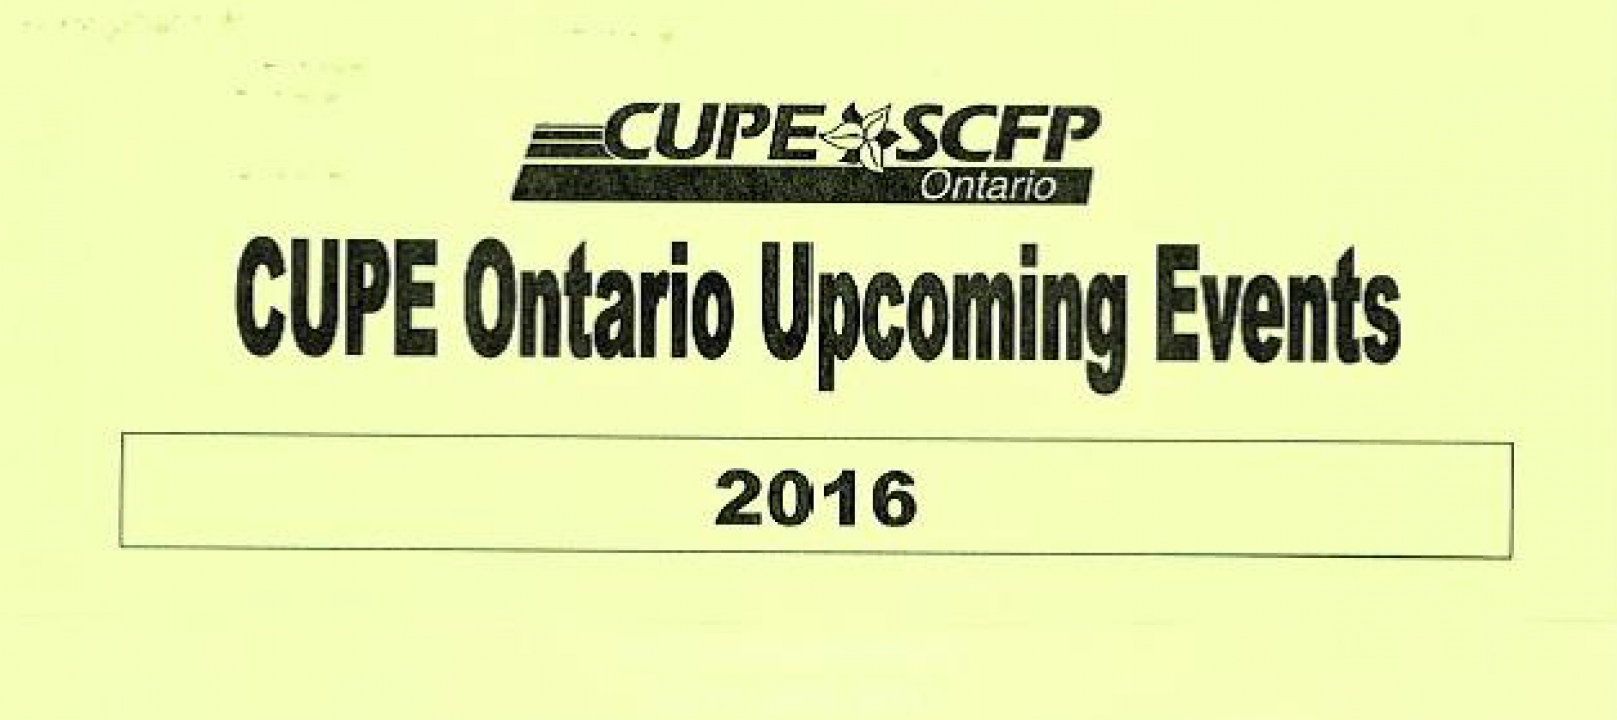 CUPE Ontario Upcoming Events (2016)